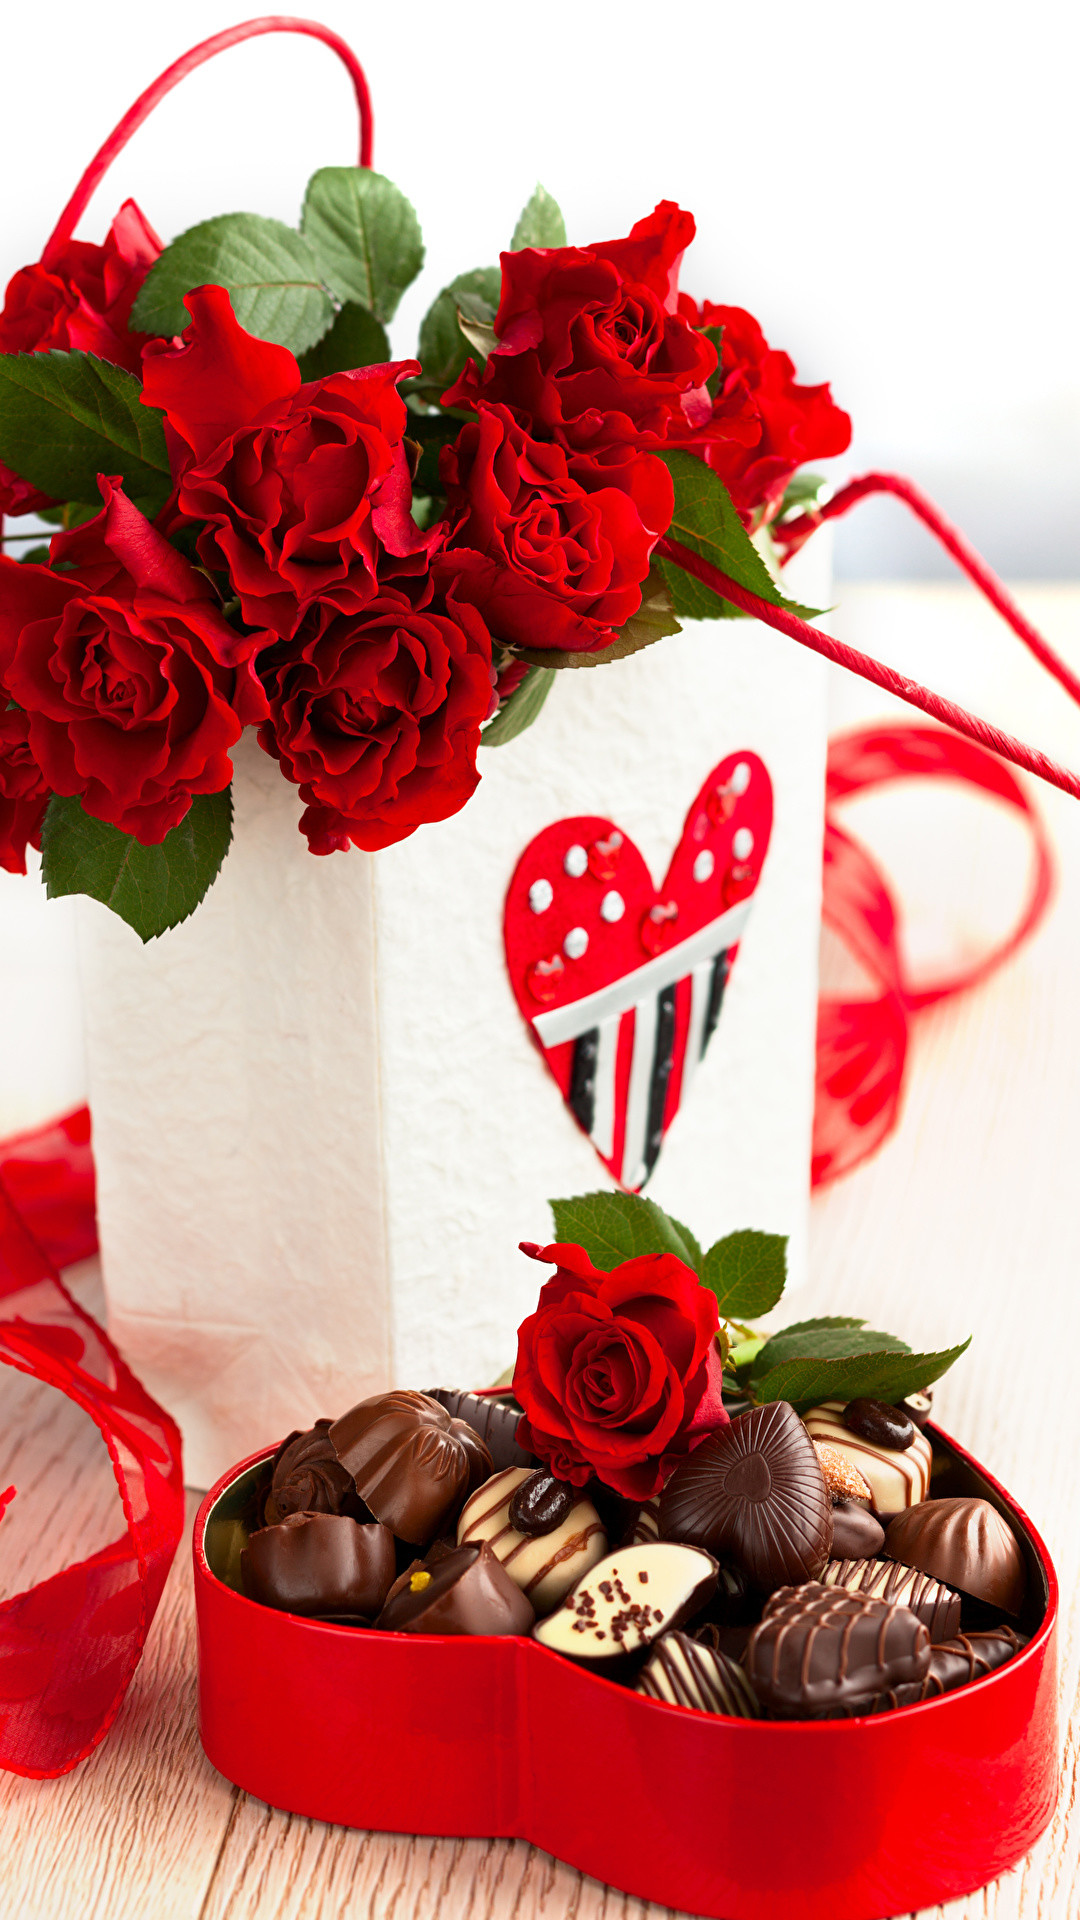 1080x1920 Wallpapers Heart Chocolate Red Candy Roses Box Flowers Food